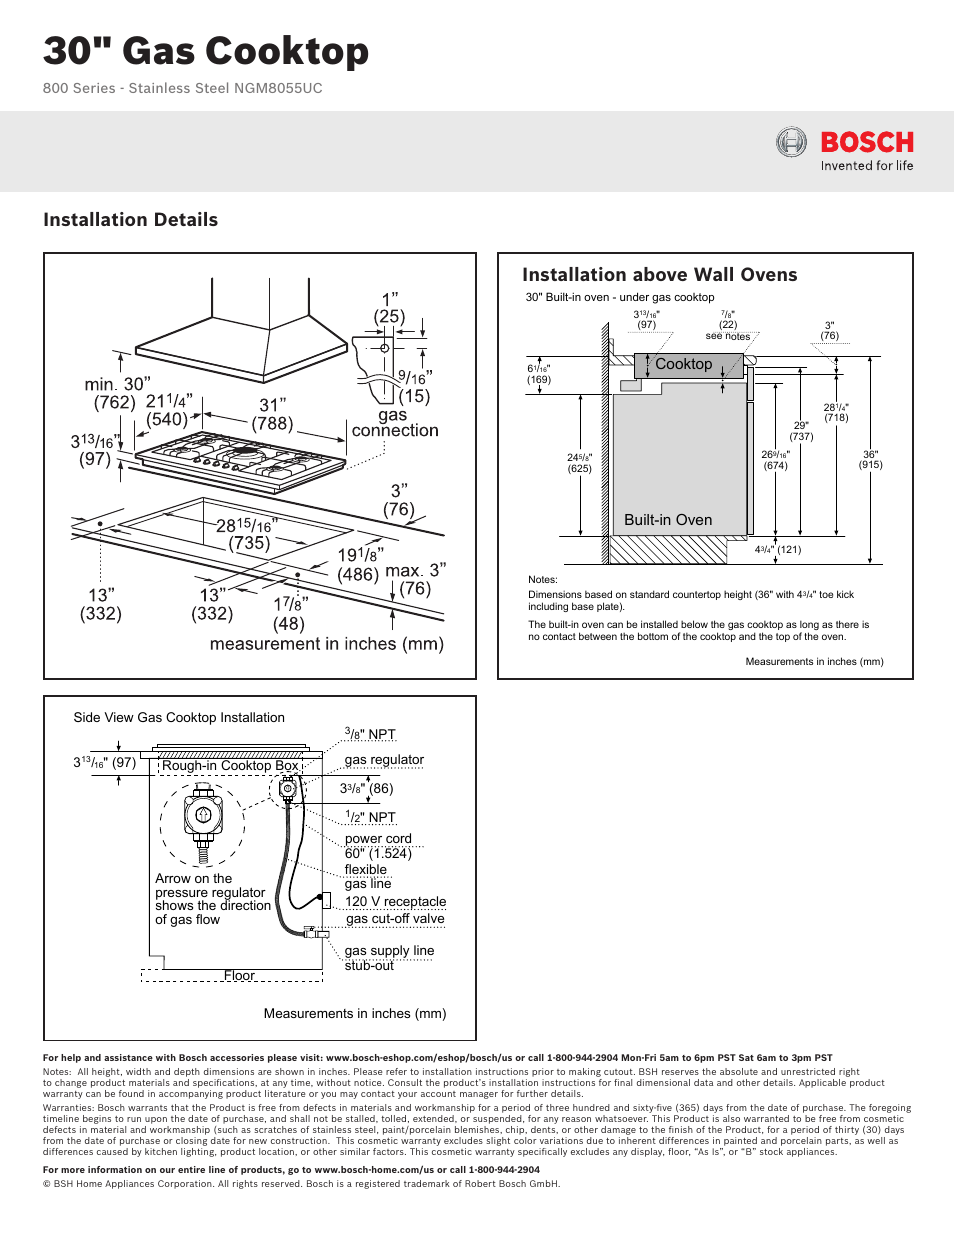 Installation Manual For Walls Clarion Wiring Diagram 2008 Ford Escape Schematic